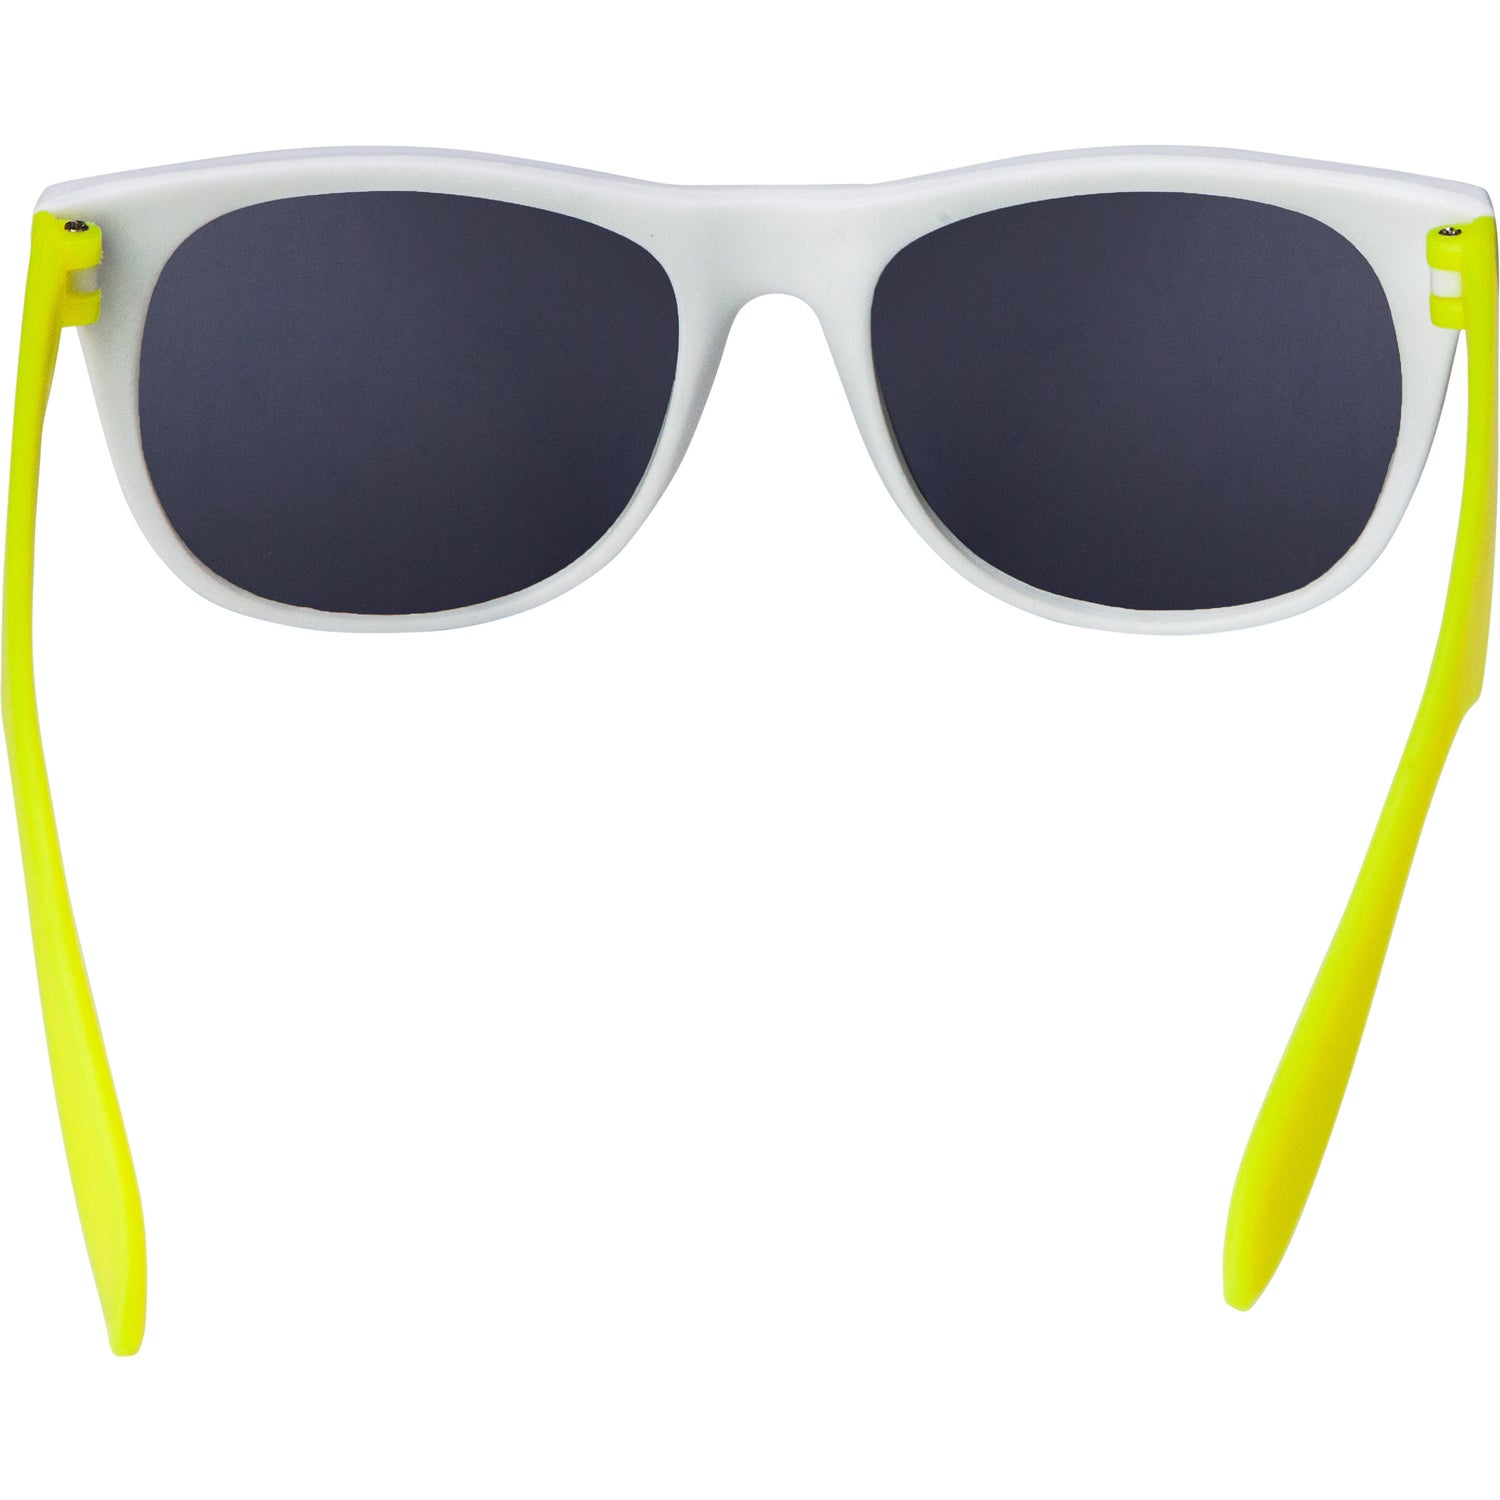 b2dd83b158 CLICK HERE to Order Rubberized Sunglasses Printed with Your Logo for 80¢ Ea.